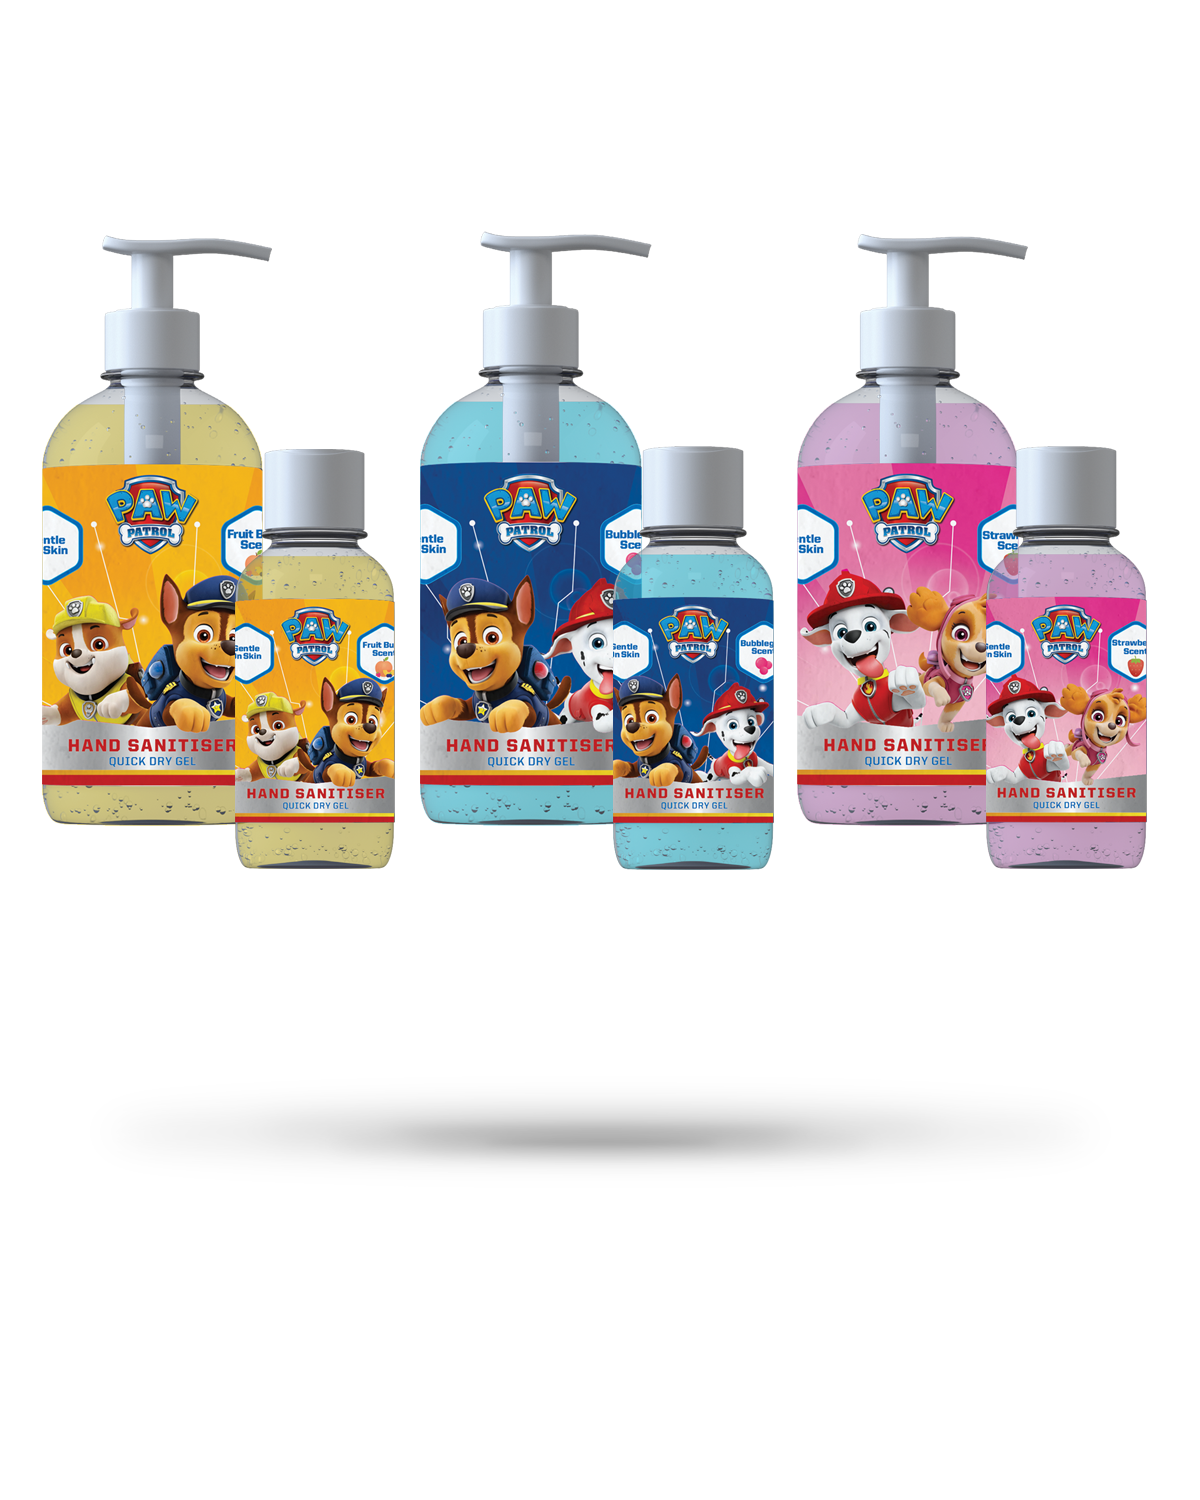 Mixed Bundle Hand Sanitiser Gel - 3 x 250ml + 3 x 50ml - Nickelodeon Range